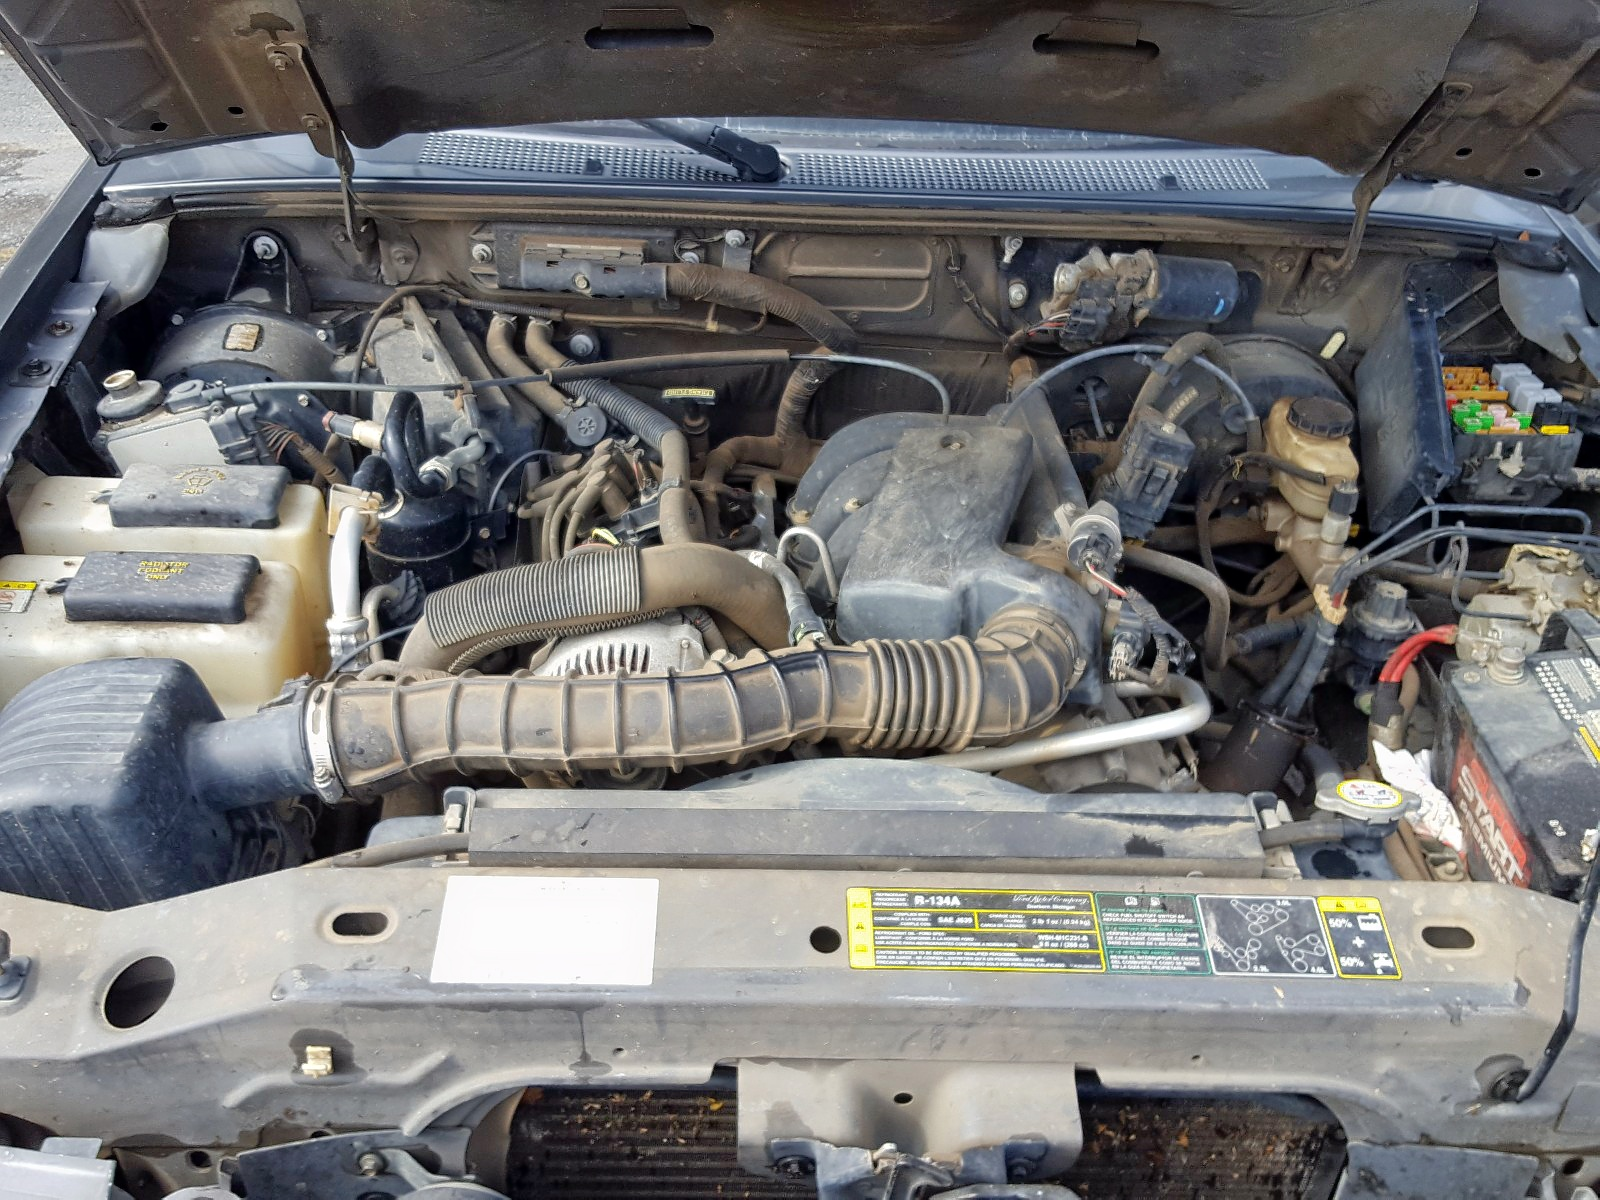 1FTYR10U46PA64835 - 2006 Ford Ranger 3.0L inside view